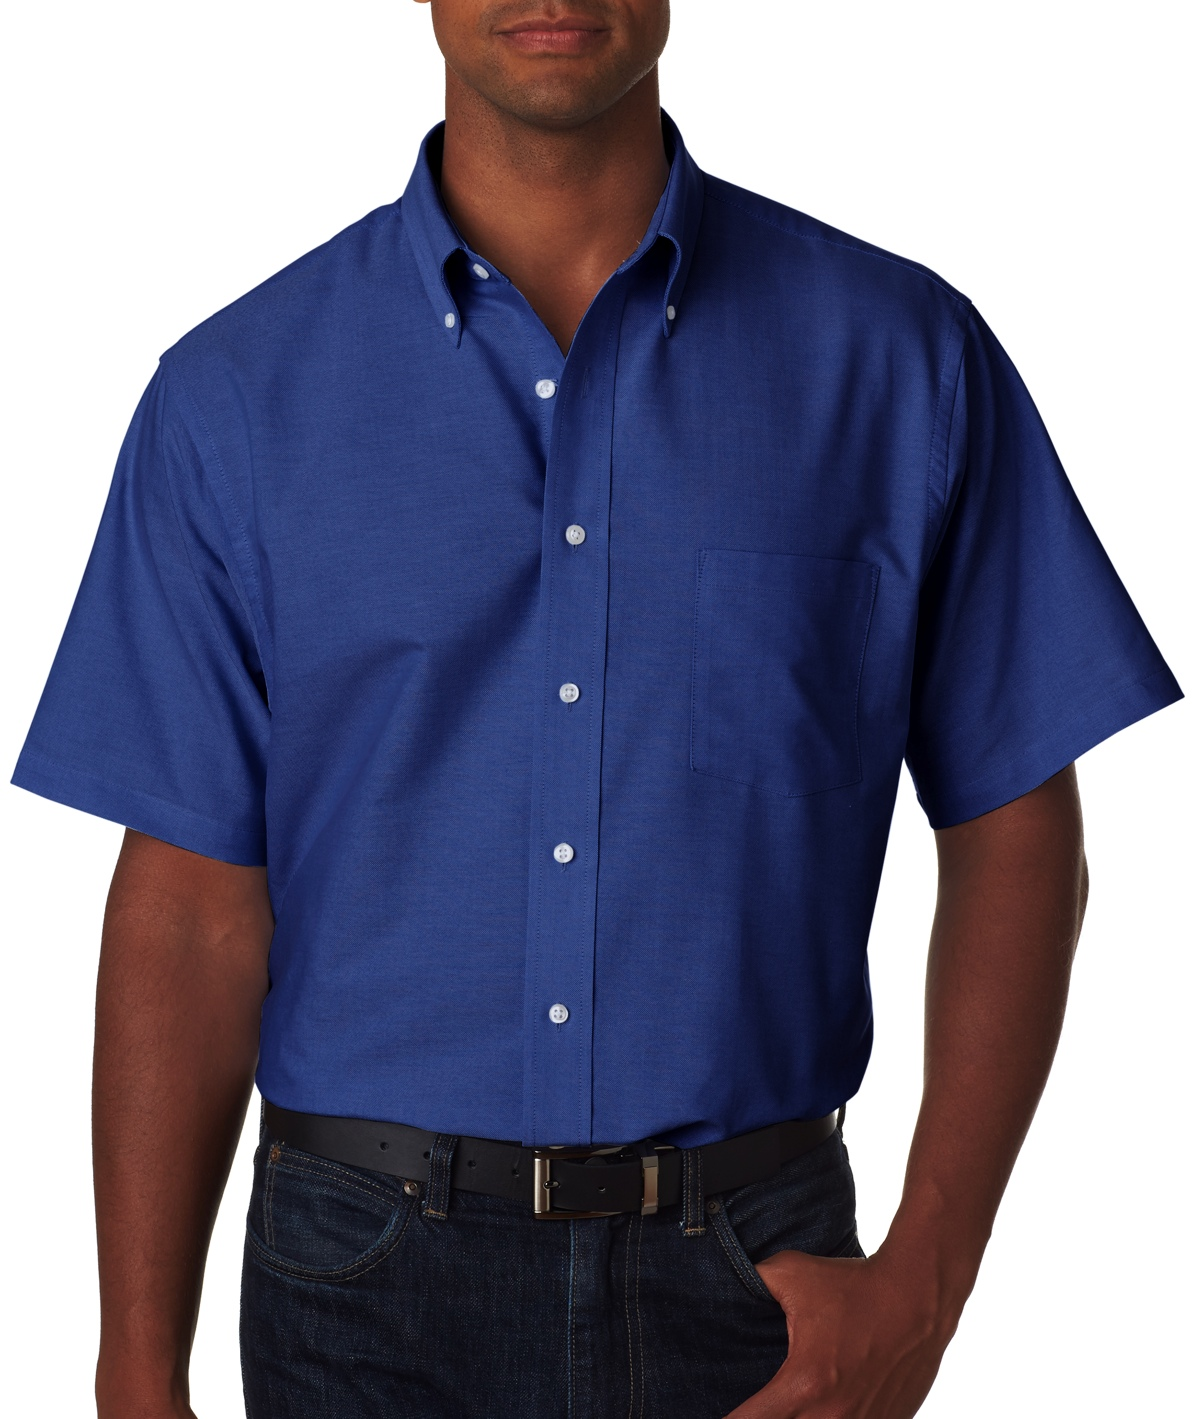 13V0042 Van Heusen Short Sleeve Oxford Shirt